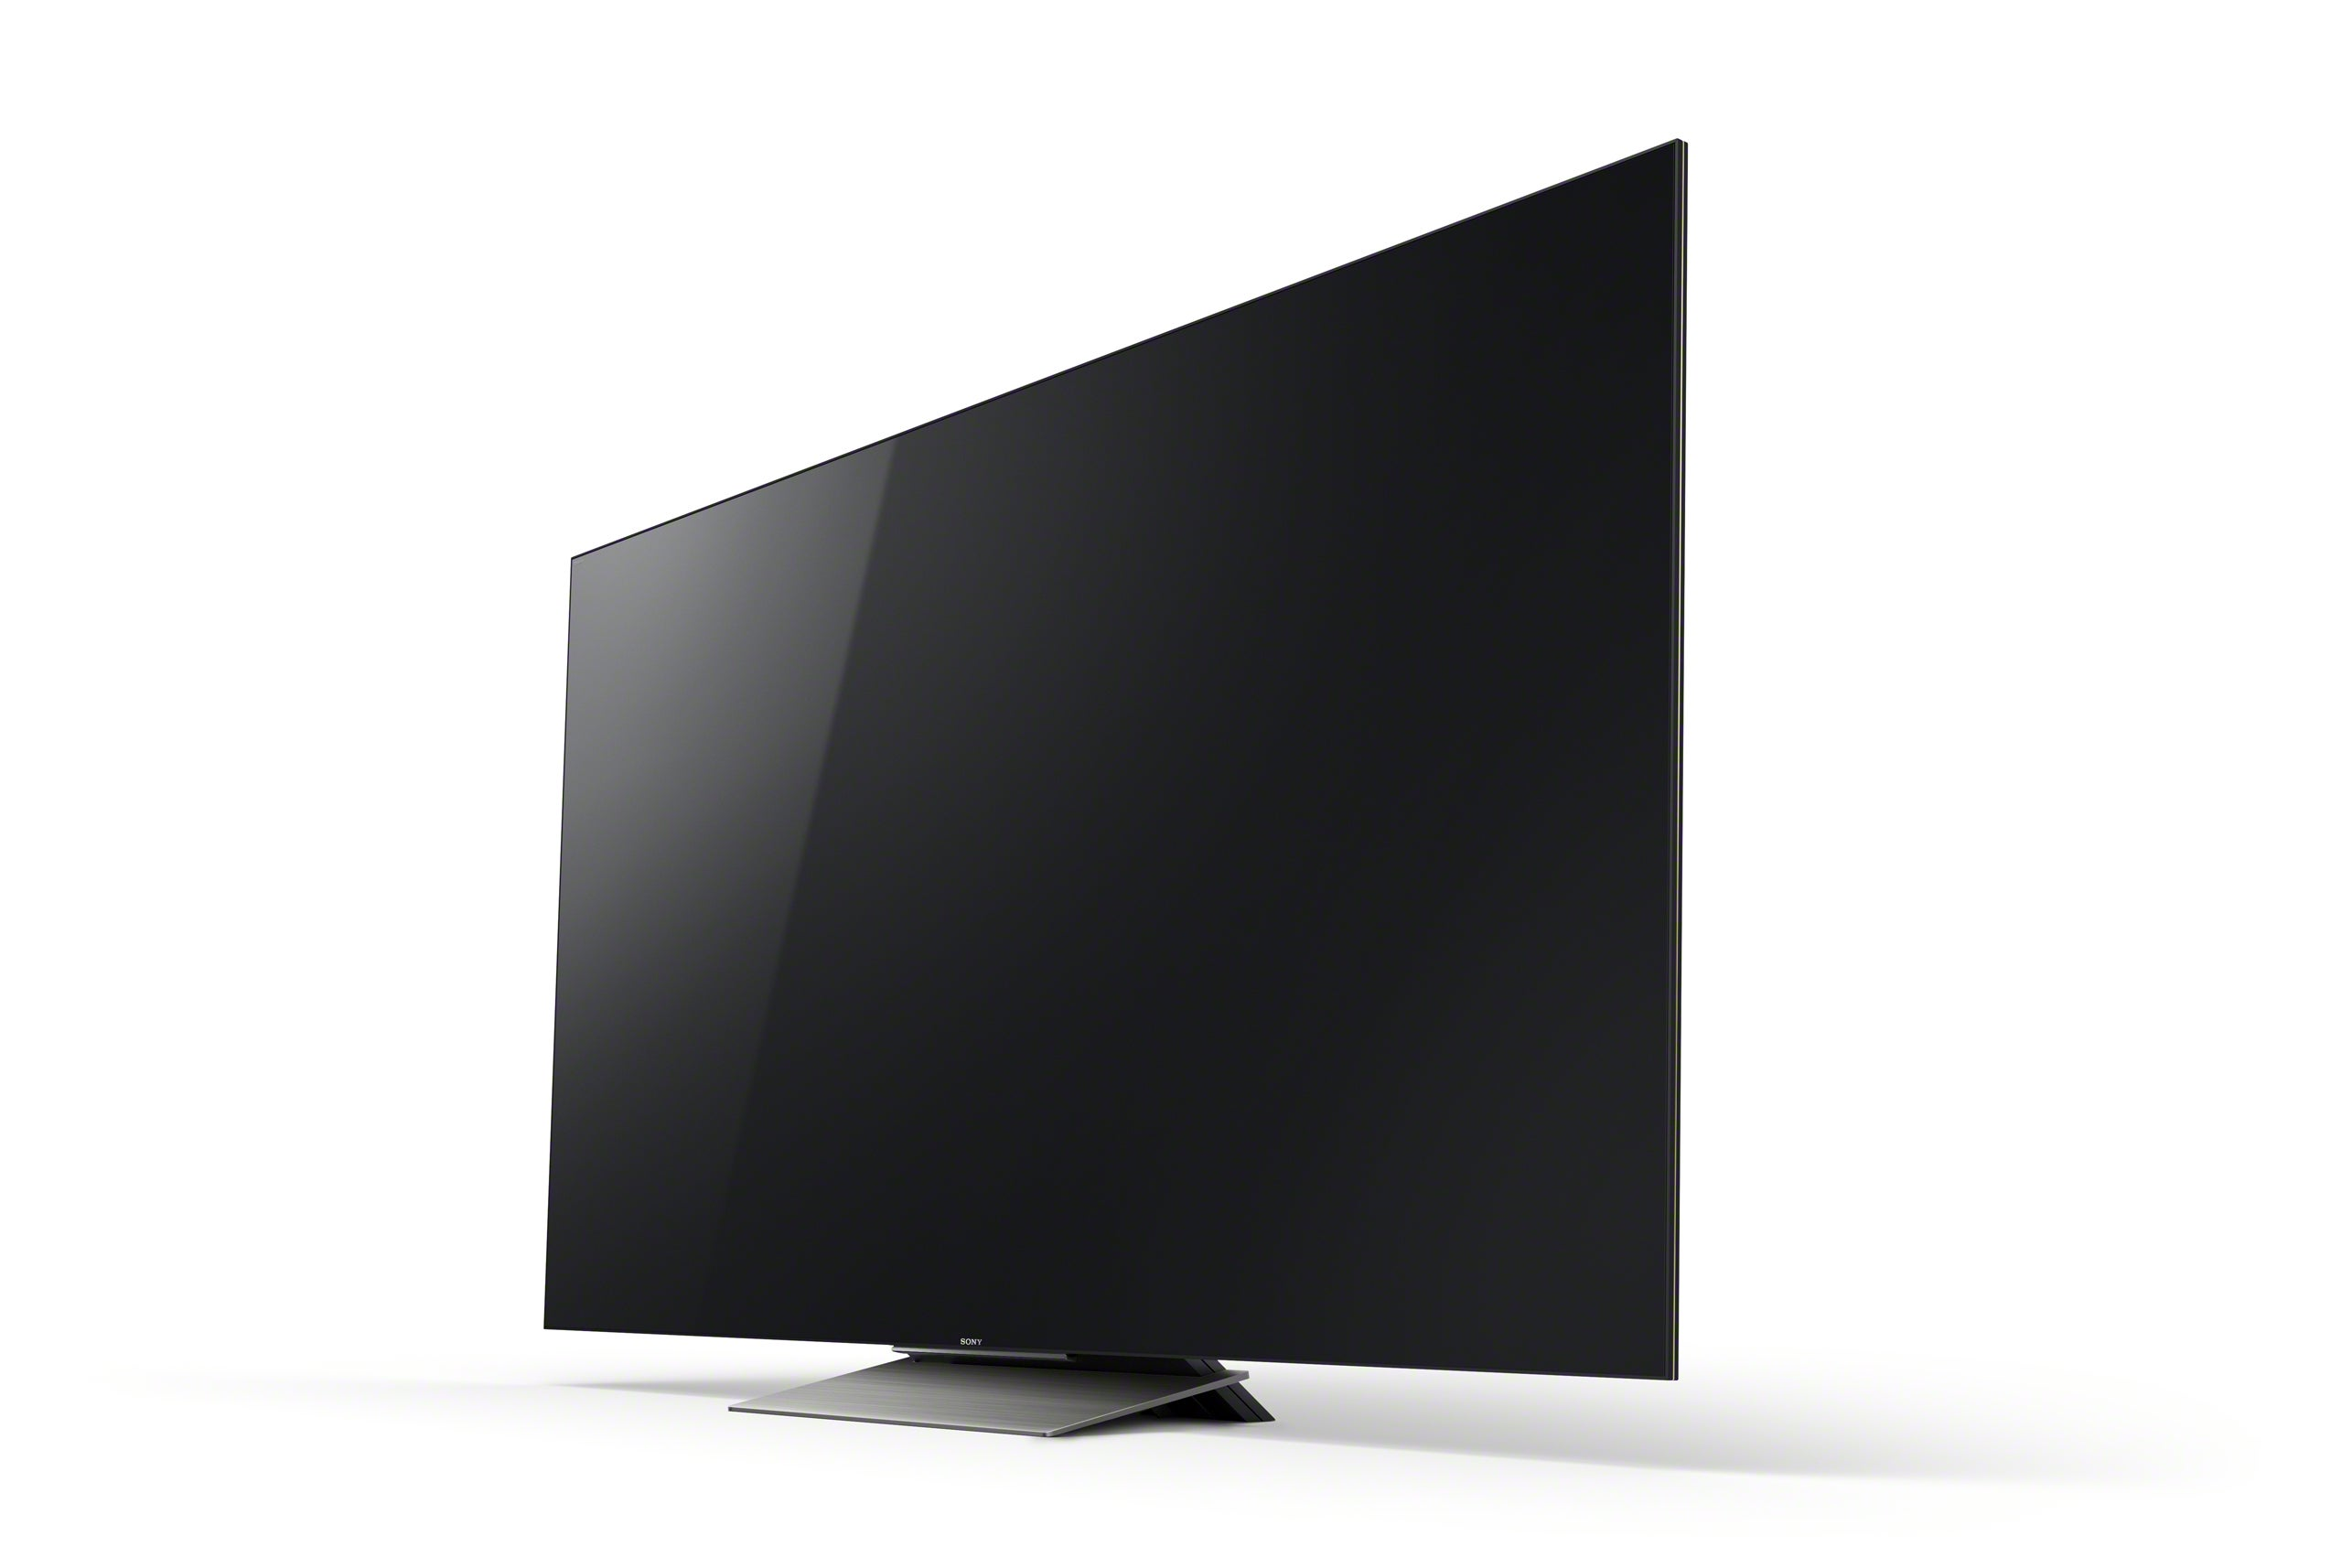 Sony X930D 4K UHD TV review: Color and HDR done the Sony way